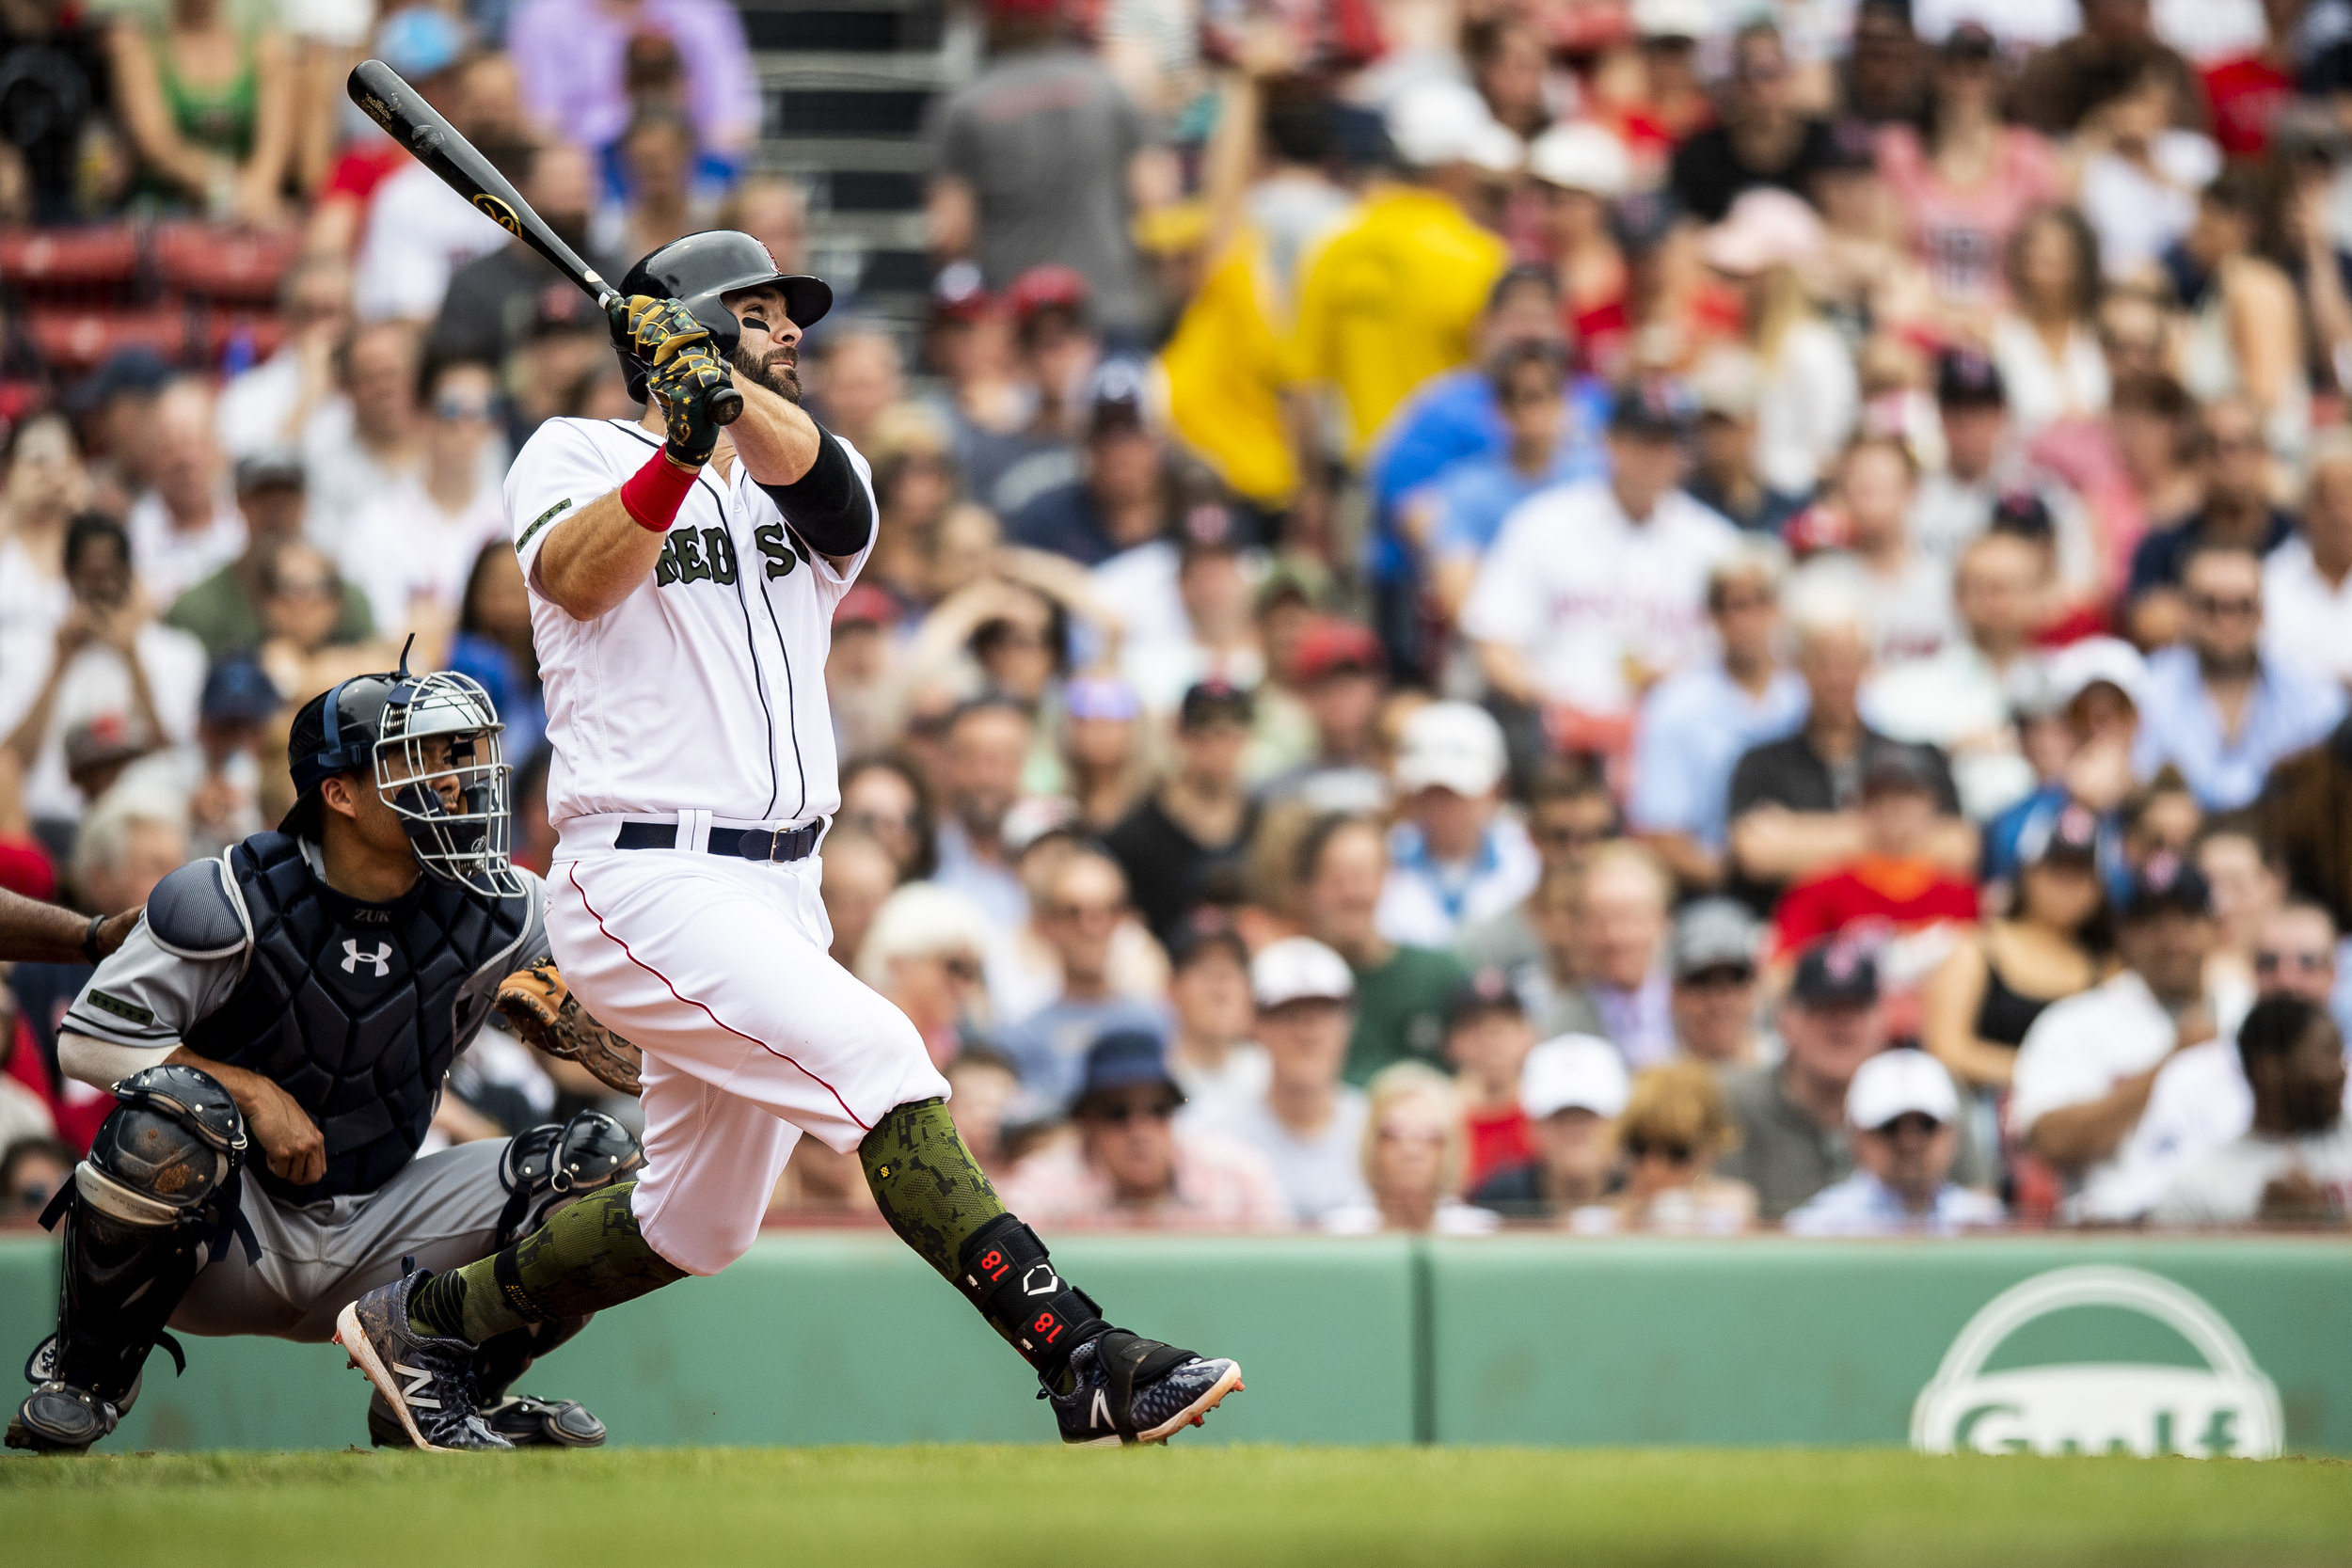 May 26, 2018, Boston, MA: Boston Red Sox first basemen Mitch Moreland swings at a pitch as the Boston Red Sox face the Atlanta Braves at Fenway Park in Boston, Massachusetts on Saturday, May 26, 2018. (Photo by Matthew Thomas/Boston Red Sox)